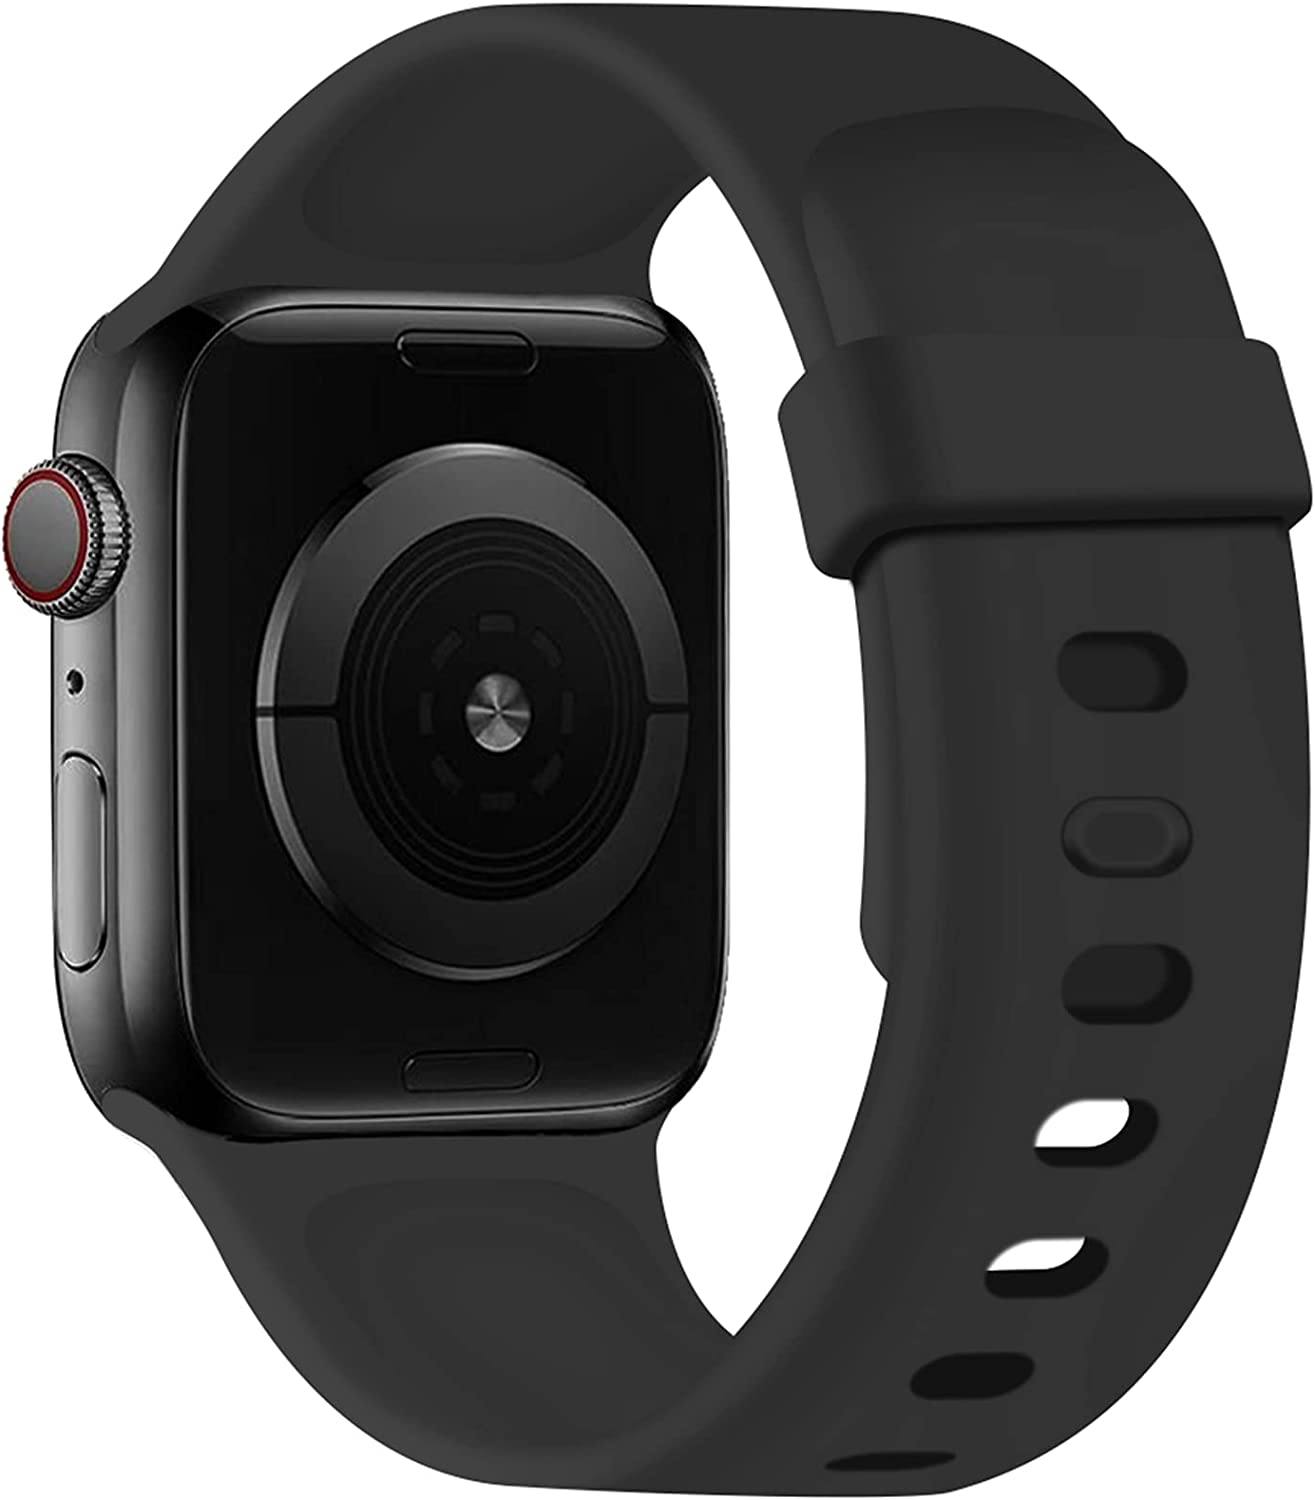 SVISVIPA Sport Bands Compatible with Apple Watch Bands 42mm 44mm, Soft Silicone Wristbands Women Men Replacement Strap for iWatch Series SE/6/5/4/3/2/1,Black